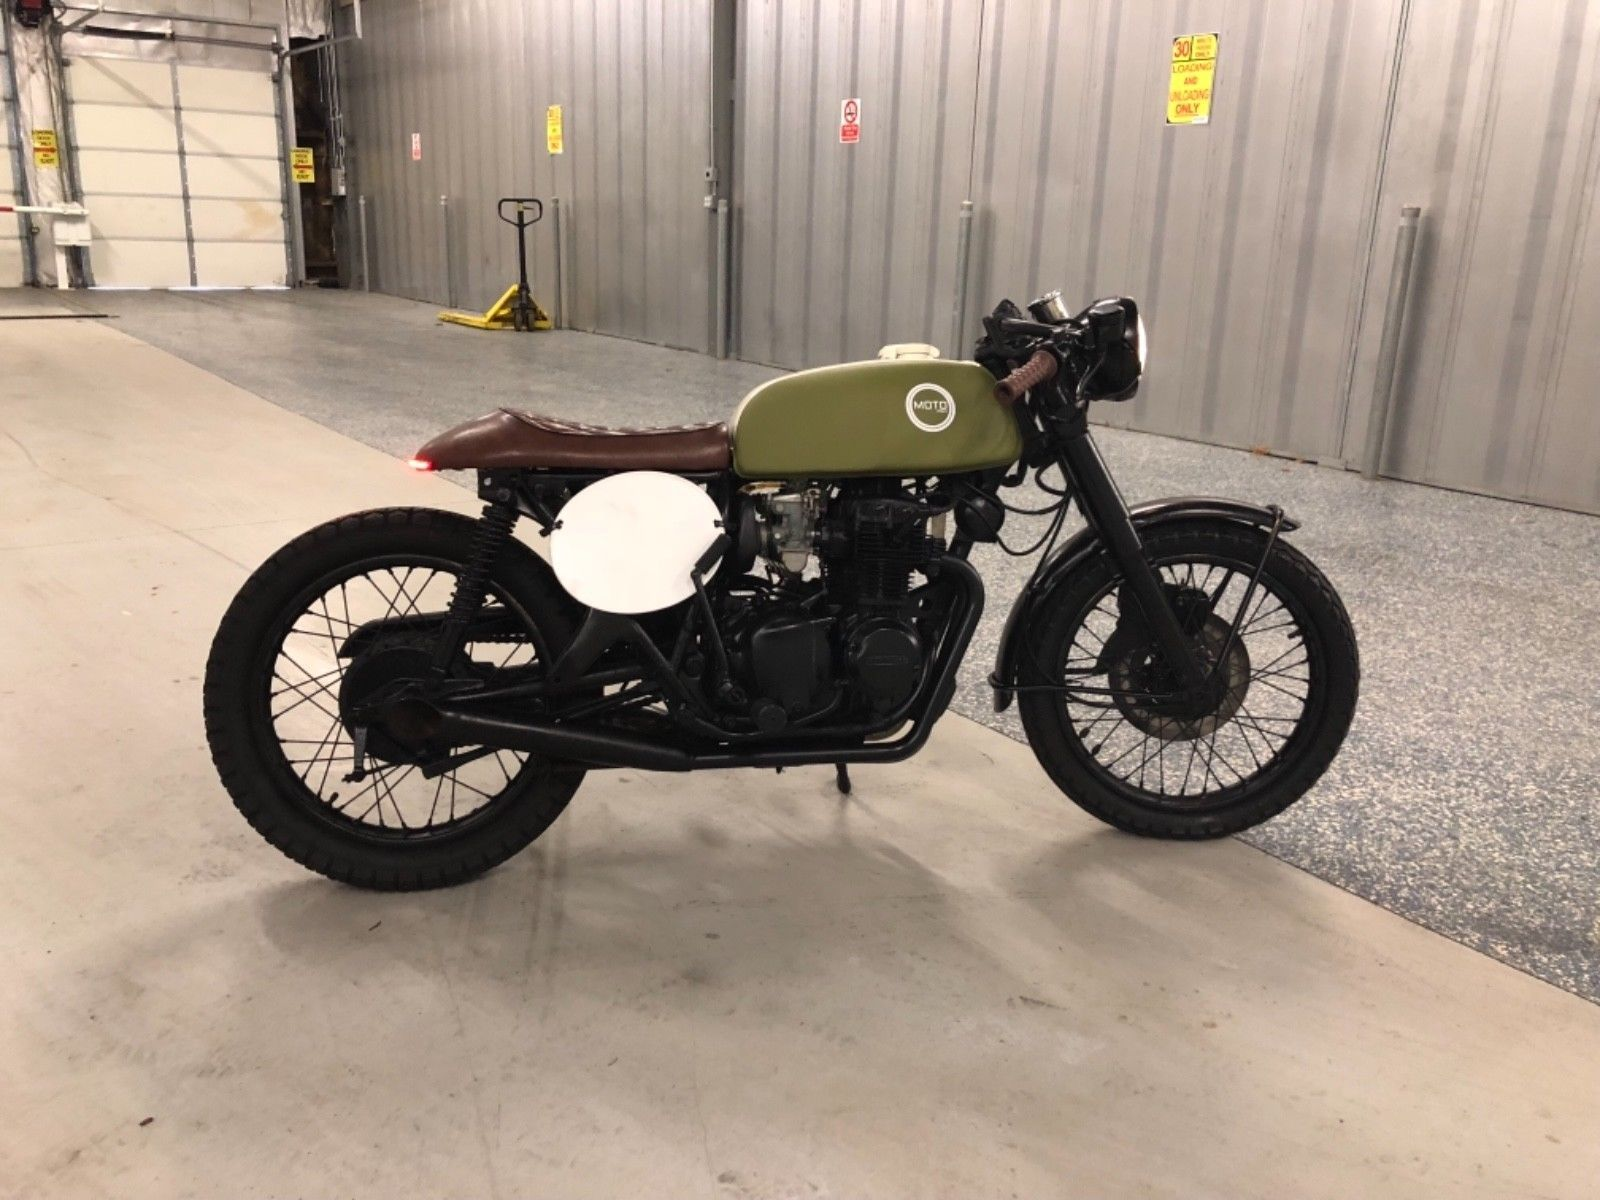 1974 Honda CB350F Cafe Racer Custom Painted Tank Matte Green Antique White 4 Into 2 Exhaust Seat LED Tail Light Mini Speedometer New